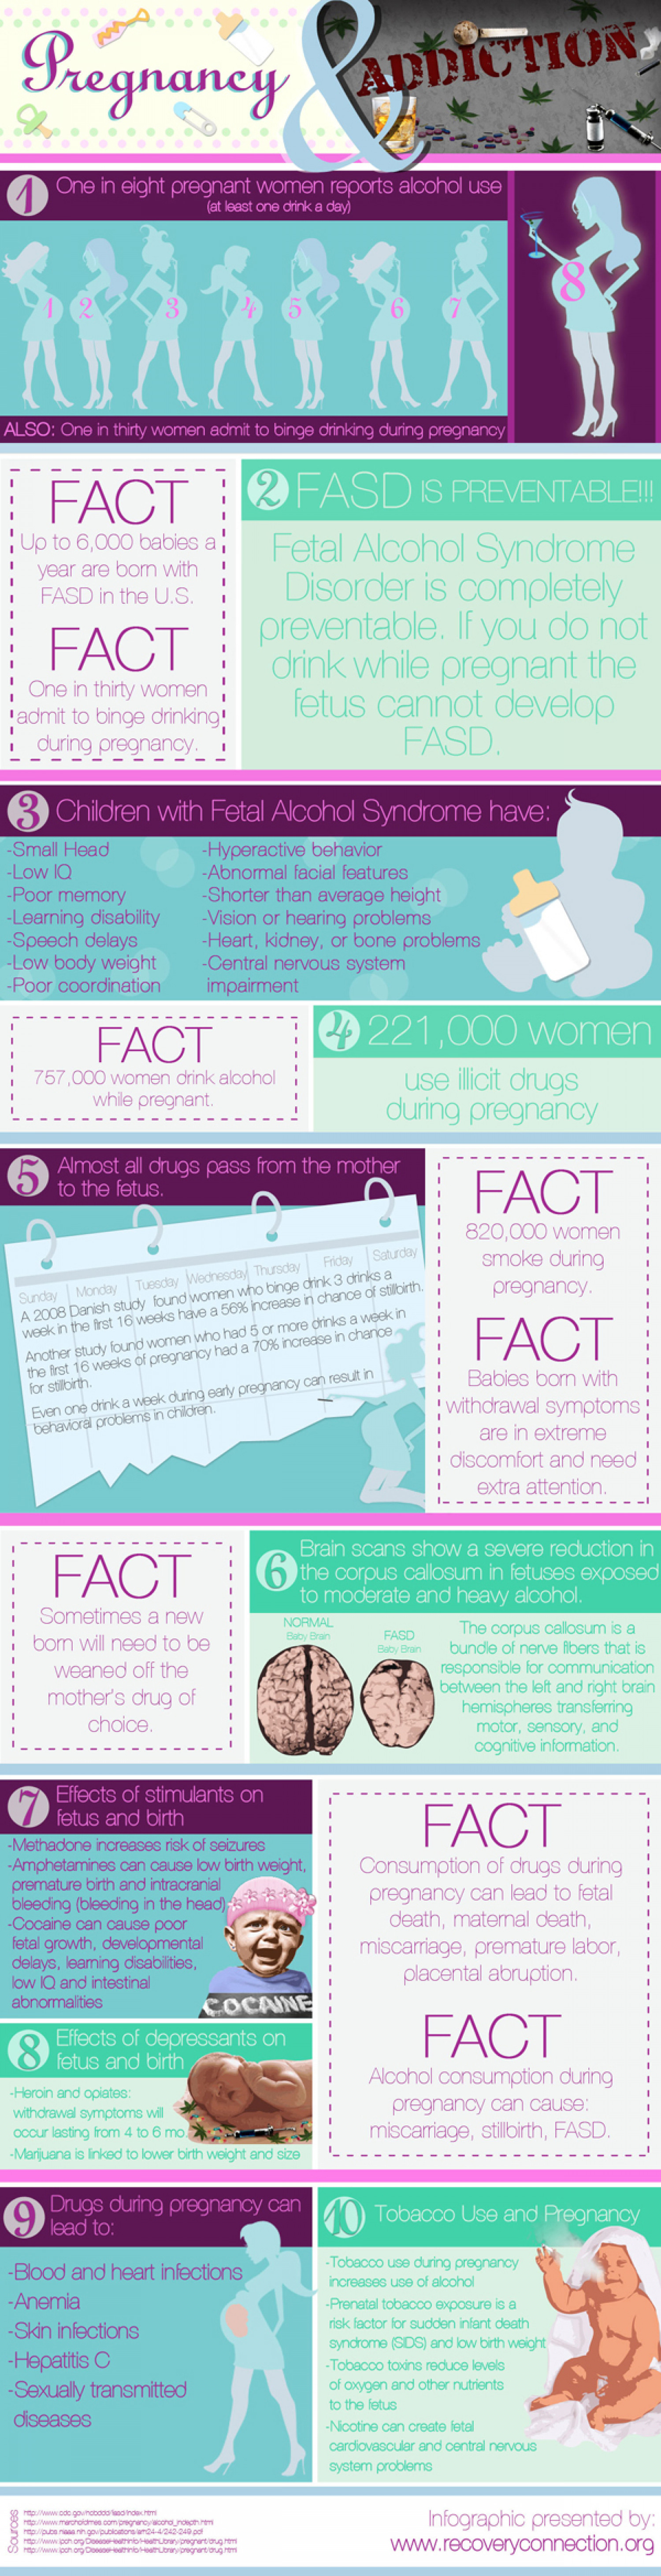 Pregnancy and Addiction Infographic